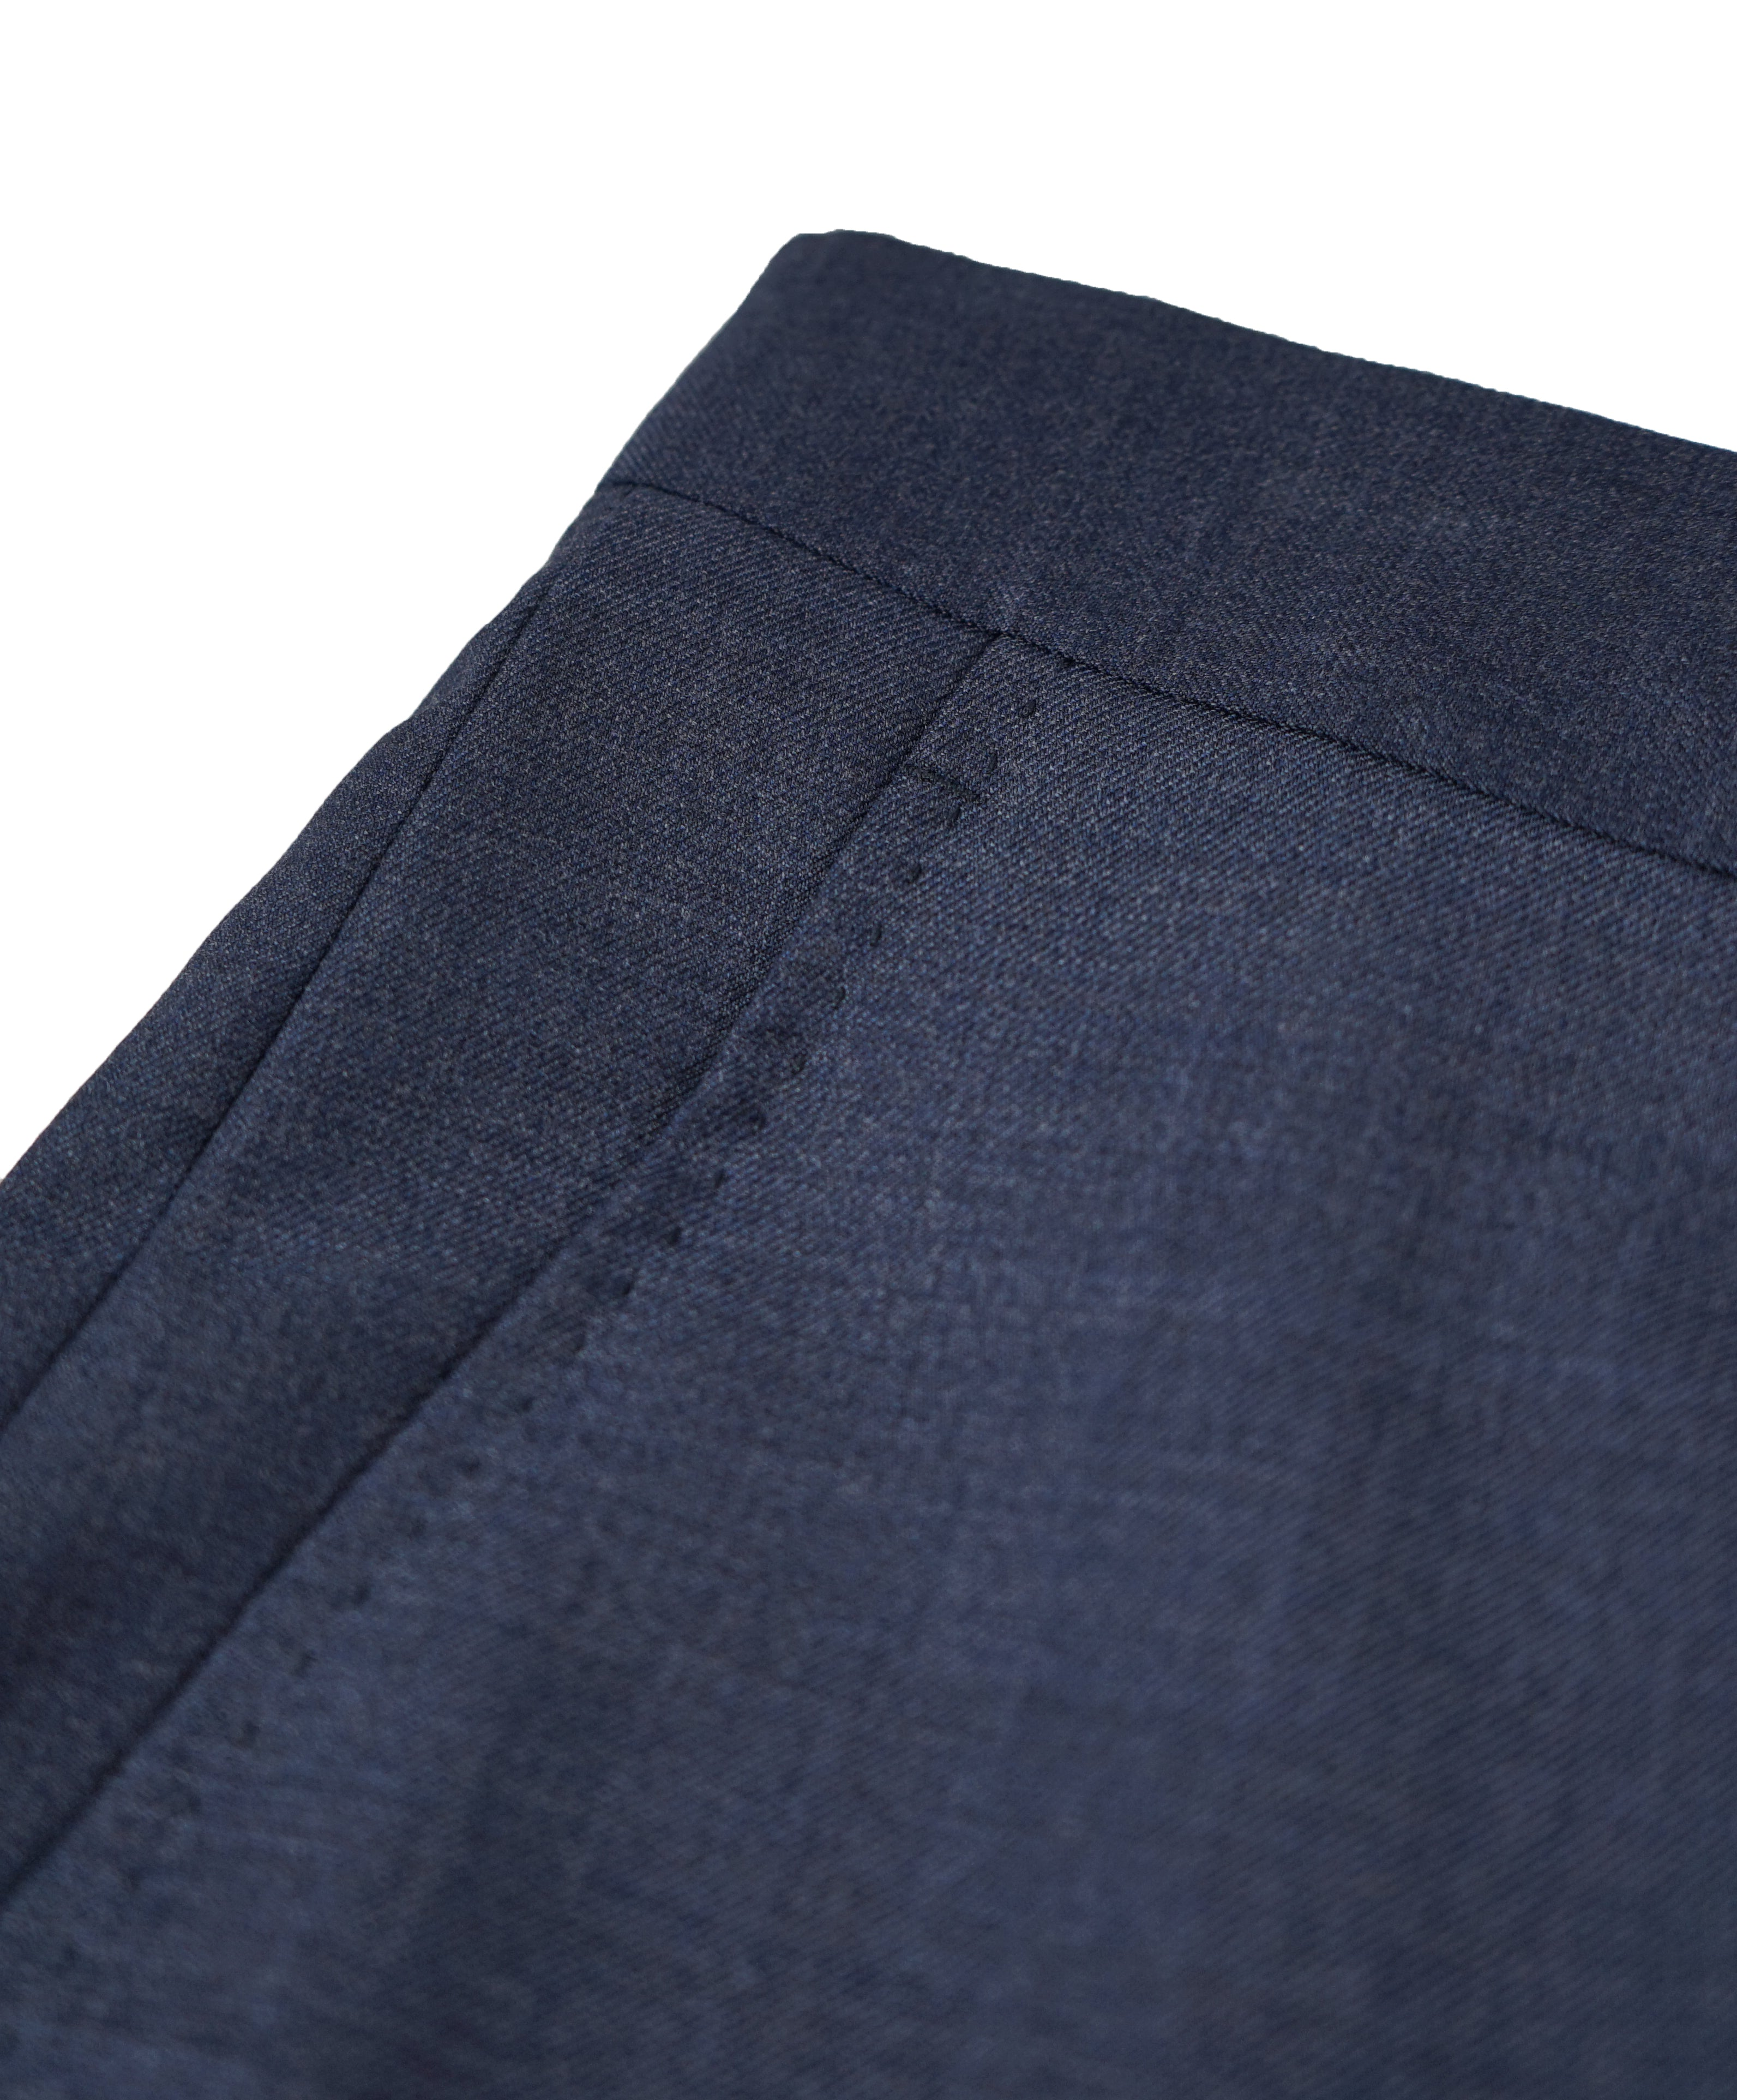 SAKS FIFTH AVE - Medium Blue MADE IN ITALY Flat Front Dress Pants - 34W